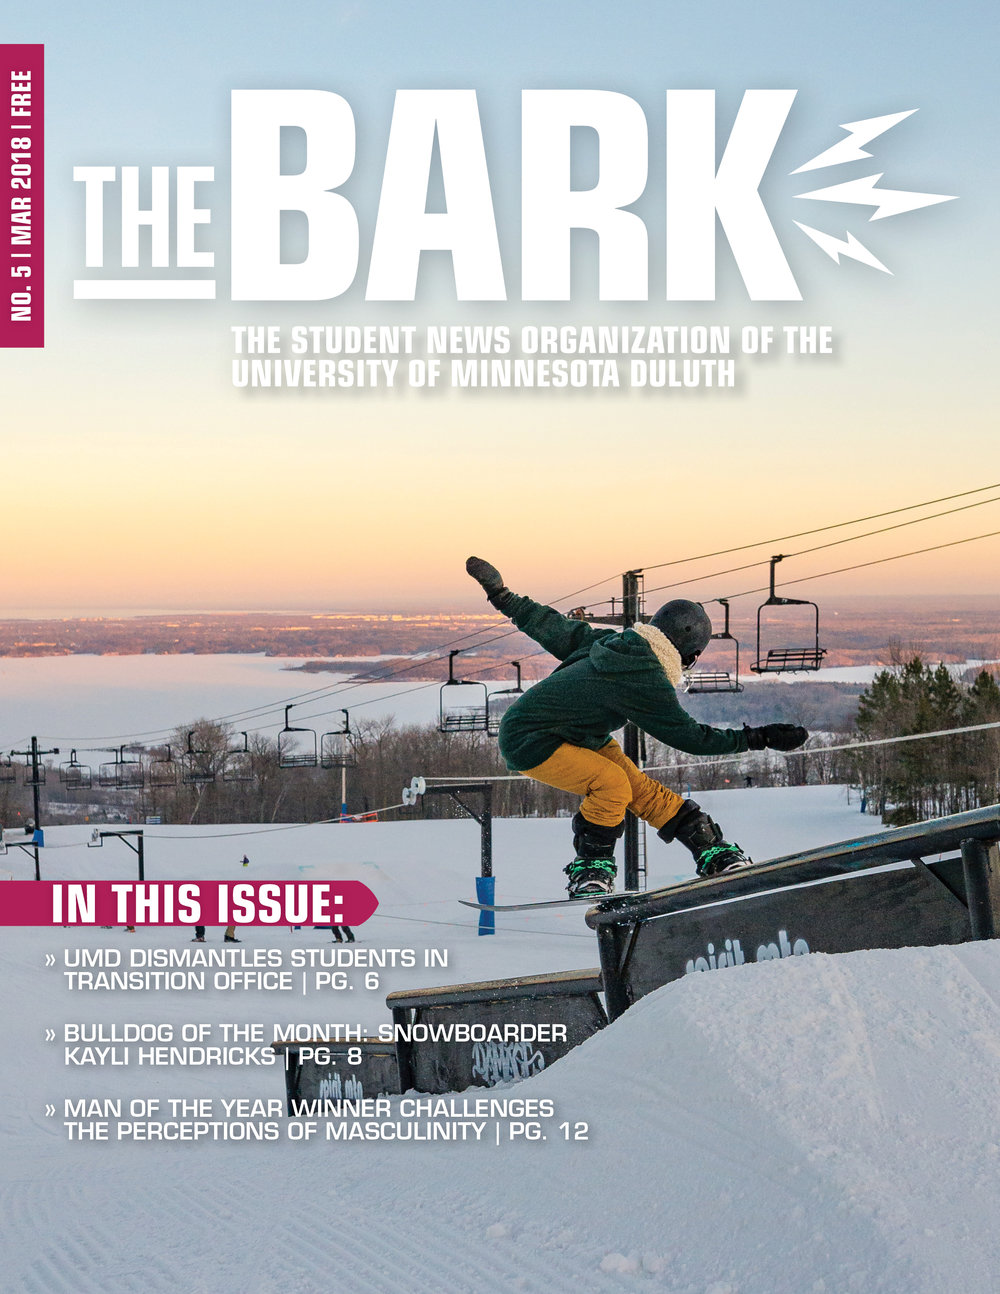 TheBark_March2018_COVERONLY_v6.jpg